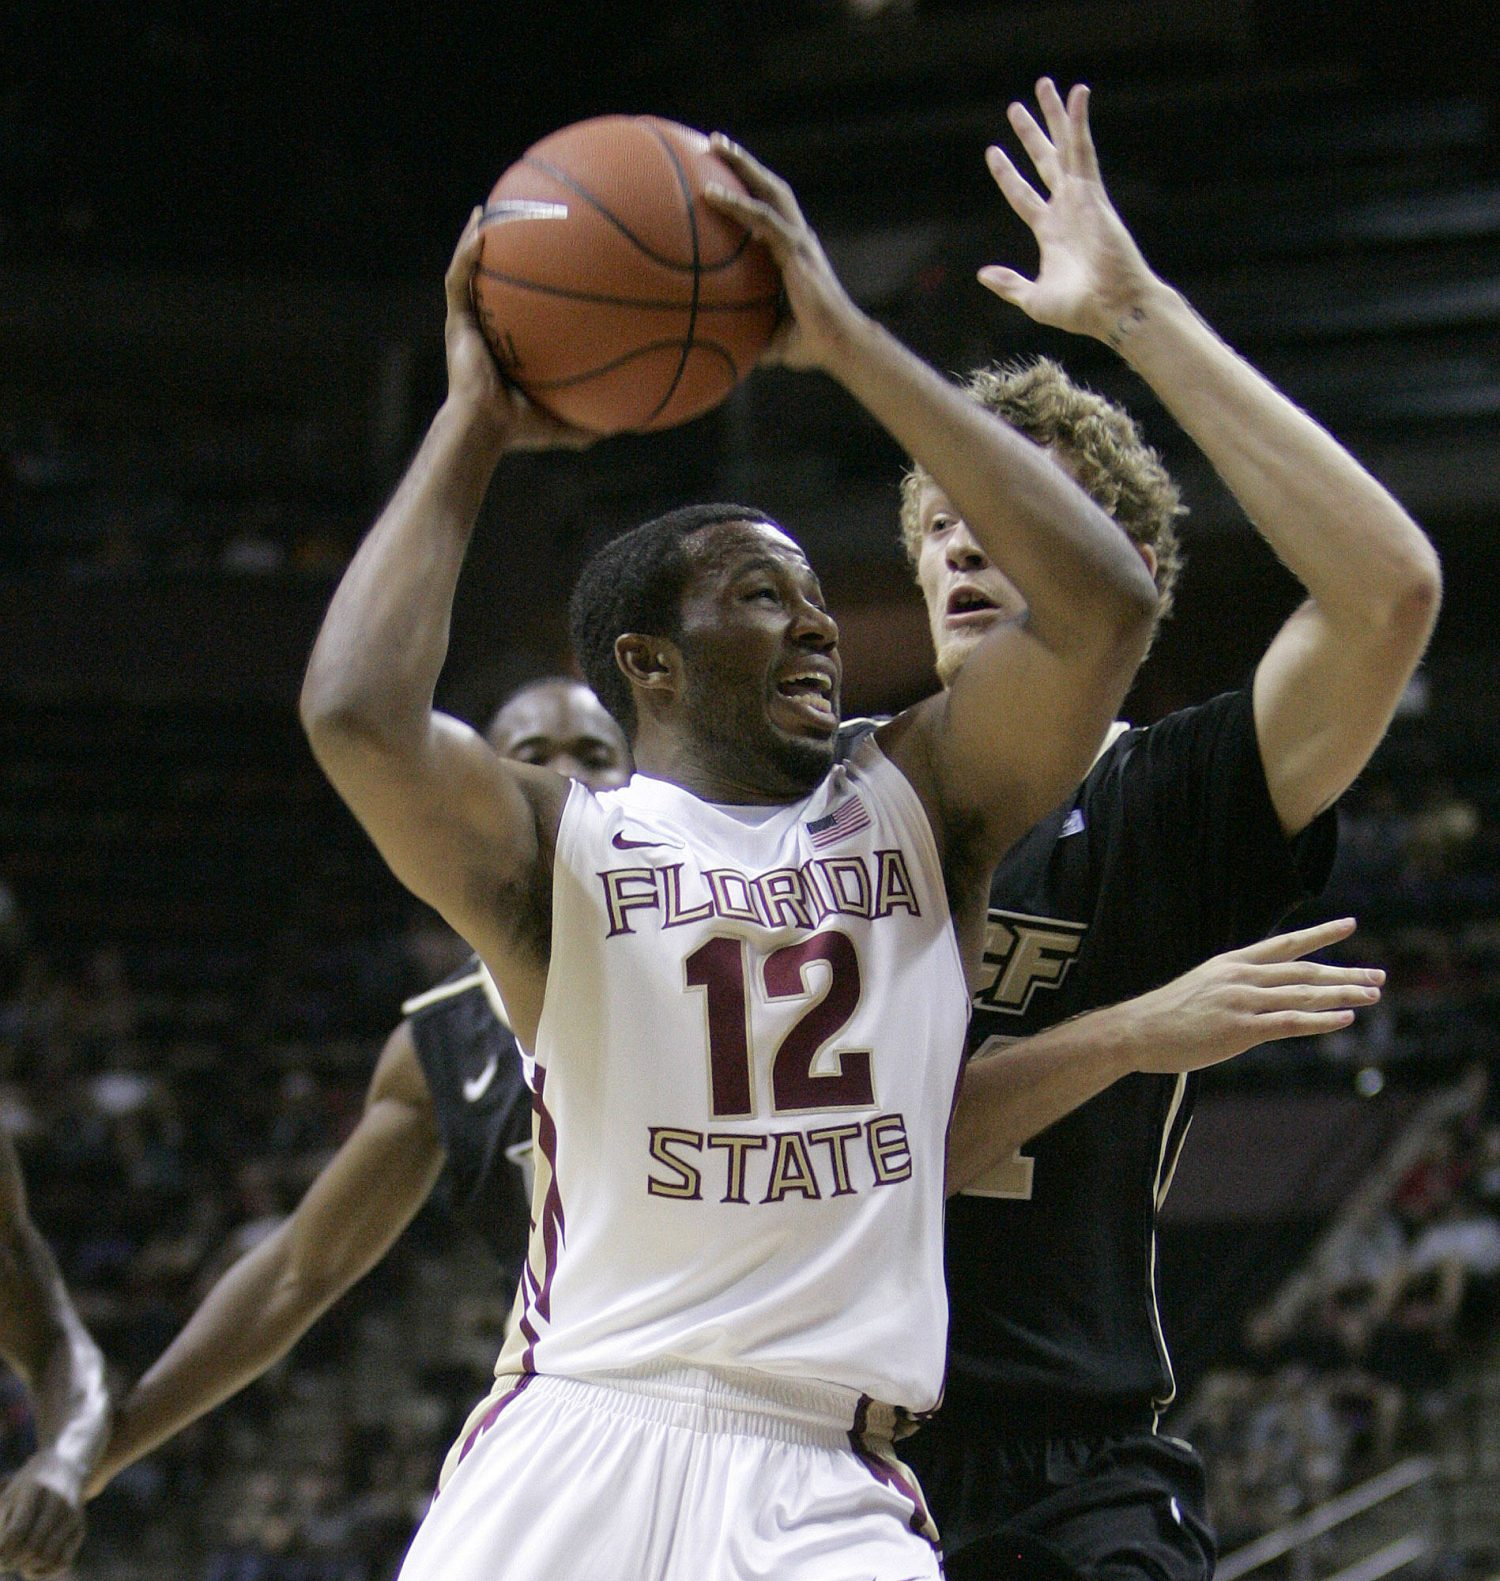 Florida State's Jeff Peterson works against the defense of Central Florida's P.J. Gaynor in the first half of an NCAA college basketball game which Florida State won 73-50 on Monday, Nov. 14, 2011, in Tallahassee, Fla.(AP Photo/Steve Cannon)